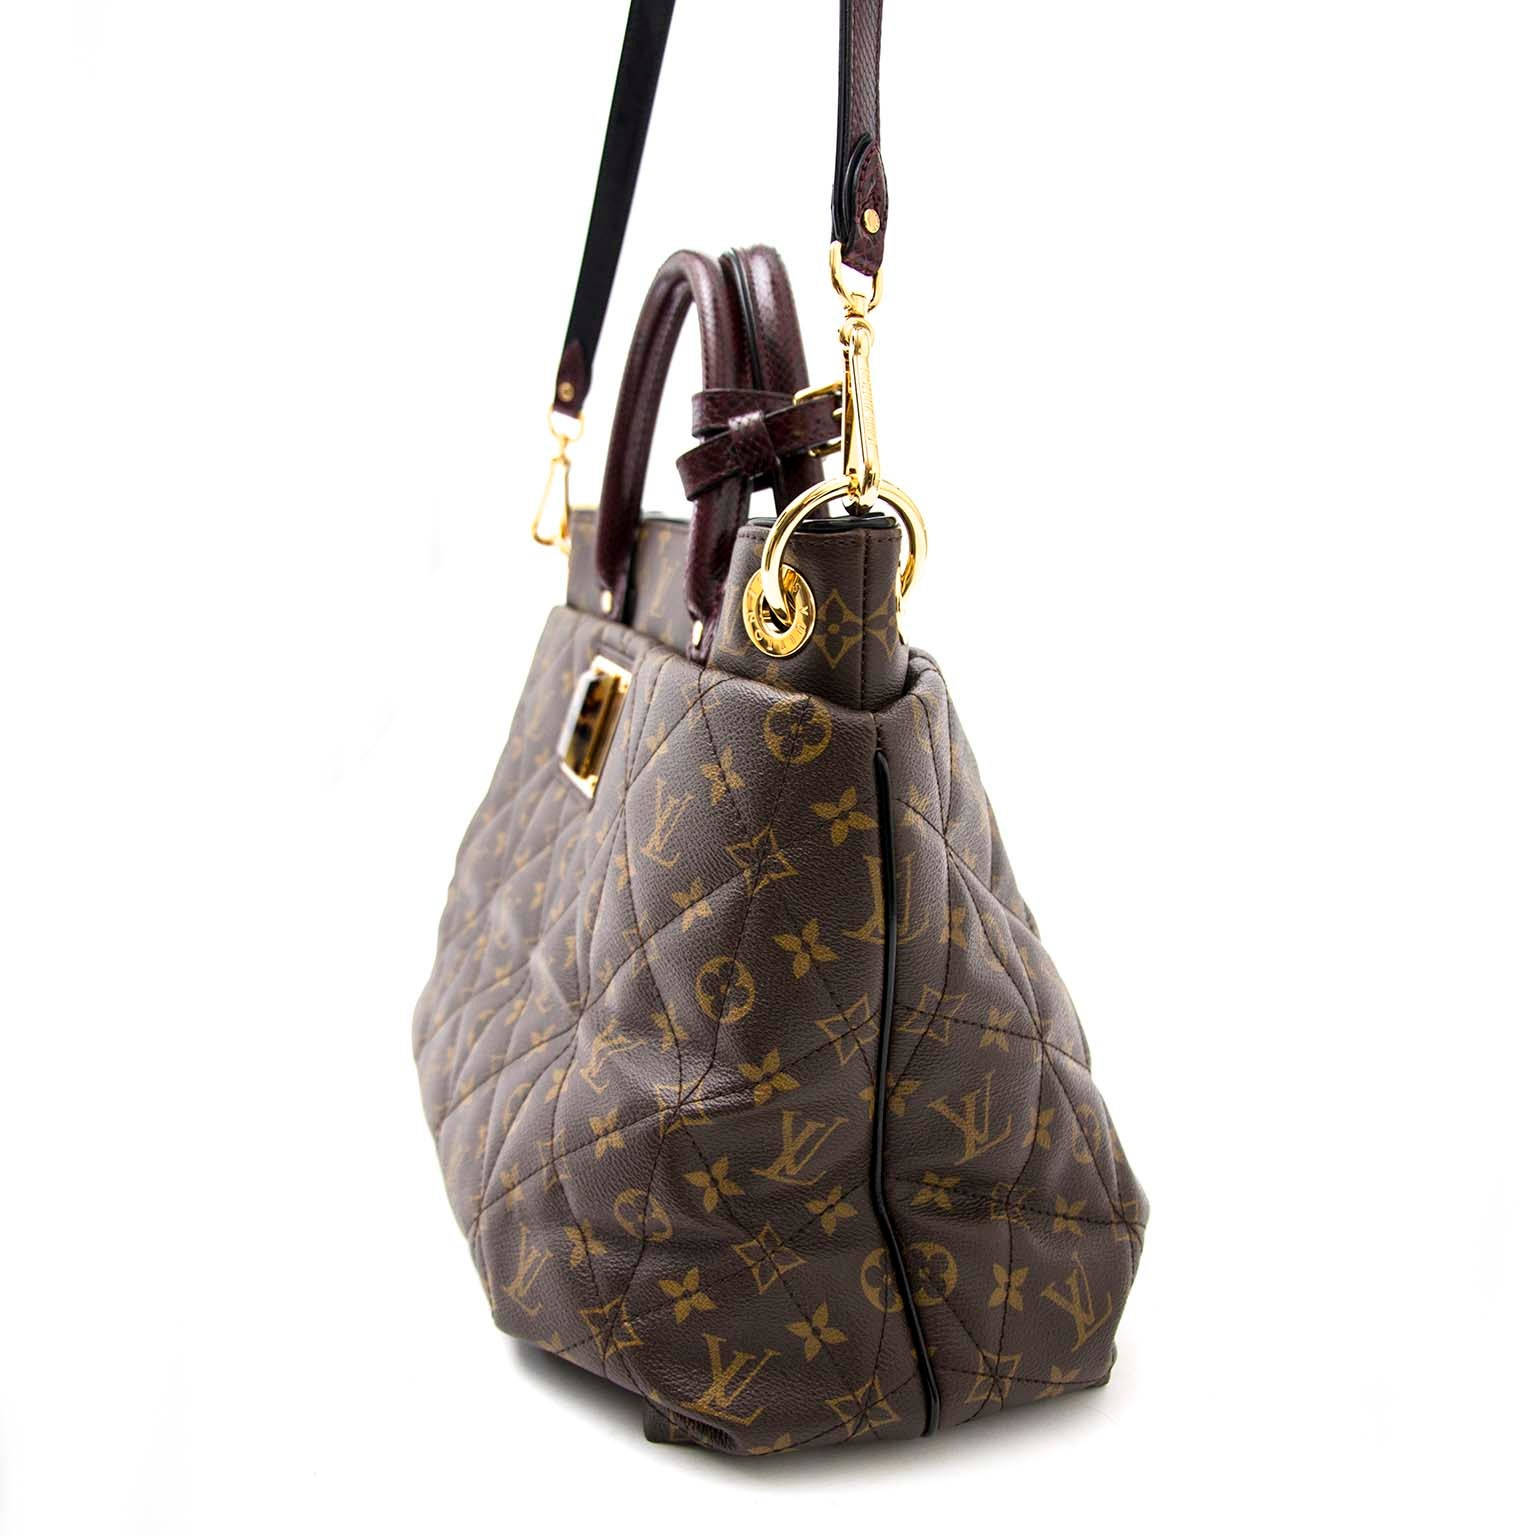 4d5cdd8ceda8 Louis Vuitton Monogram Etoile Exotique GM Tote Bag at 1stdibs